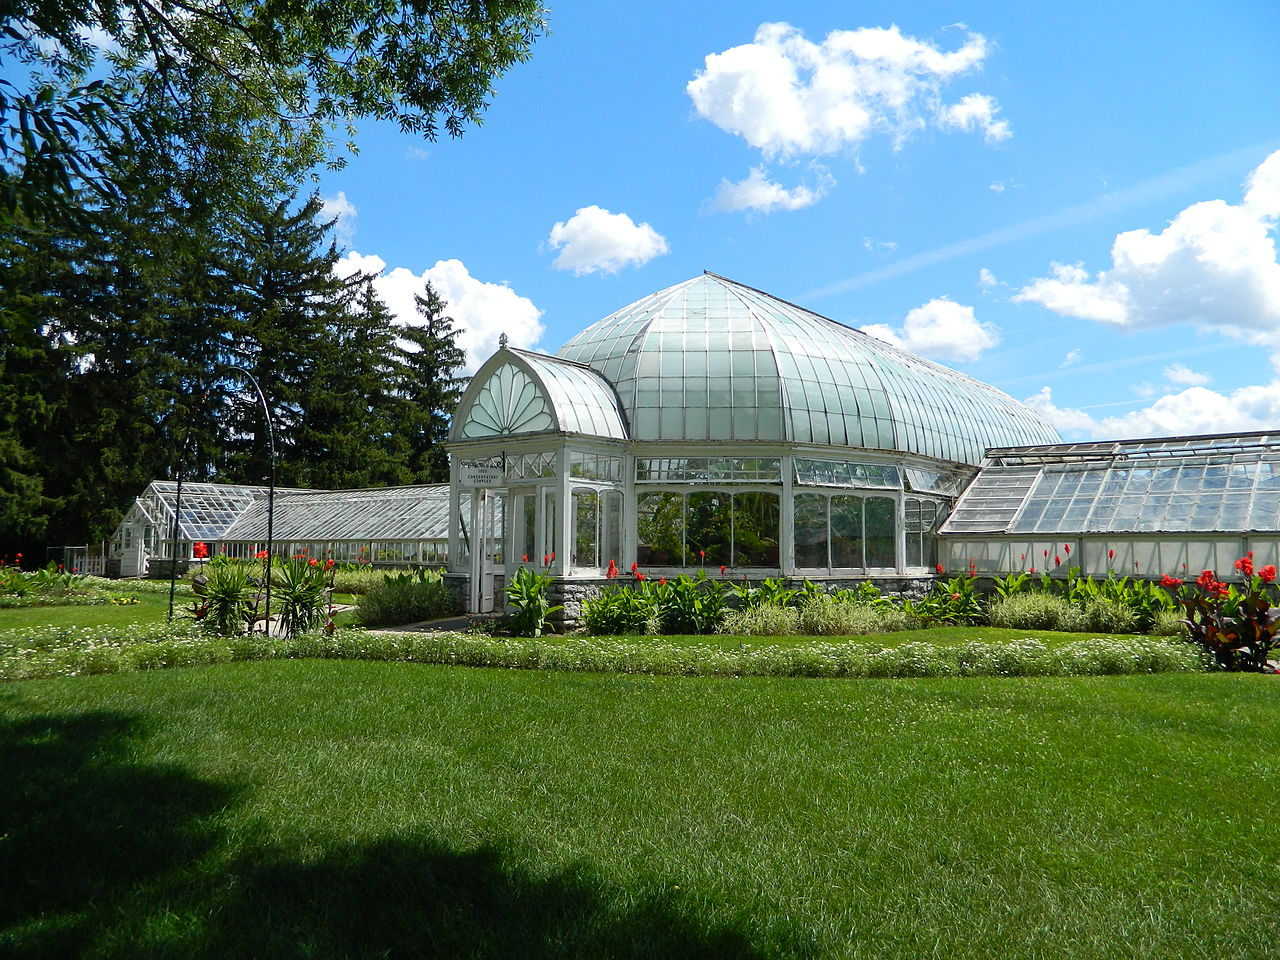 Inside the conservatory, visitors will find tropical plants and flowers.